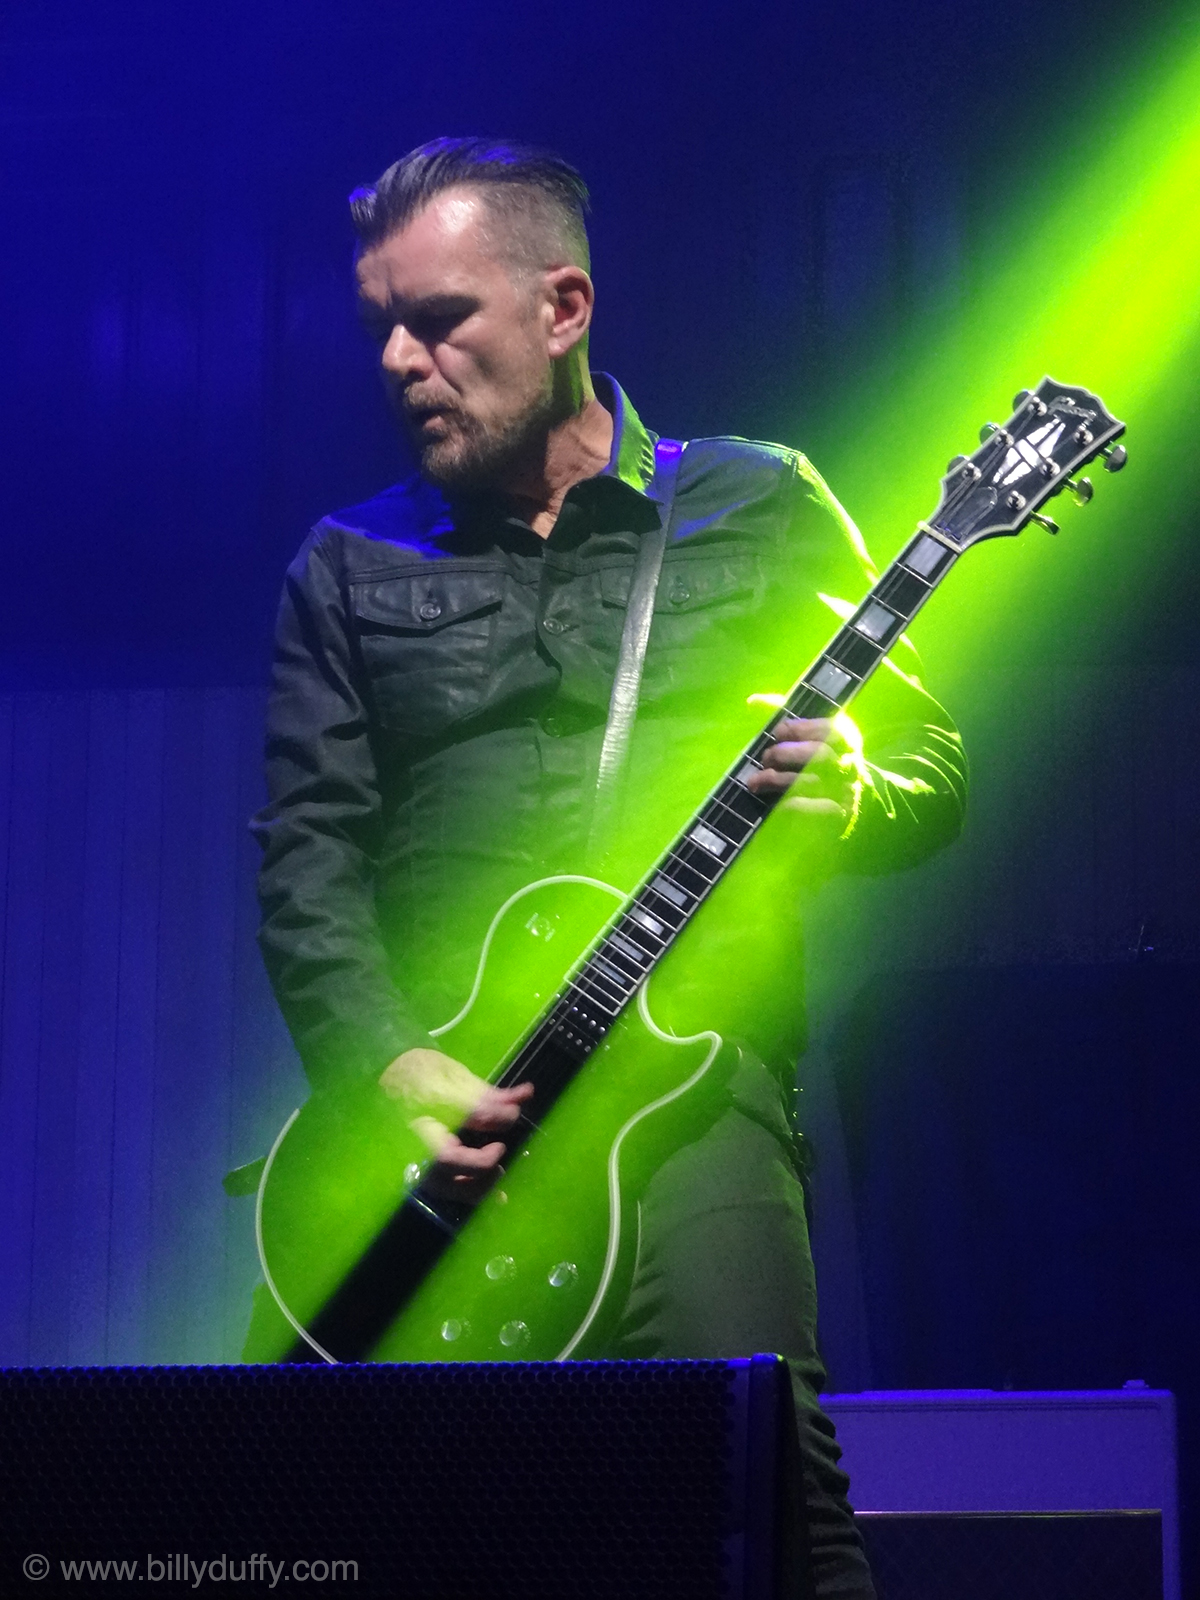 Caught in the spotlight... - Billy Duffy